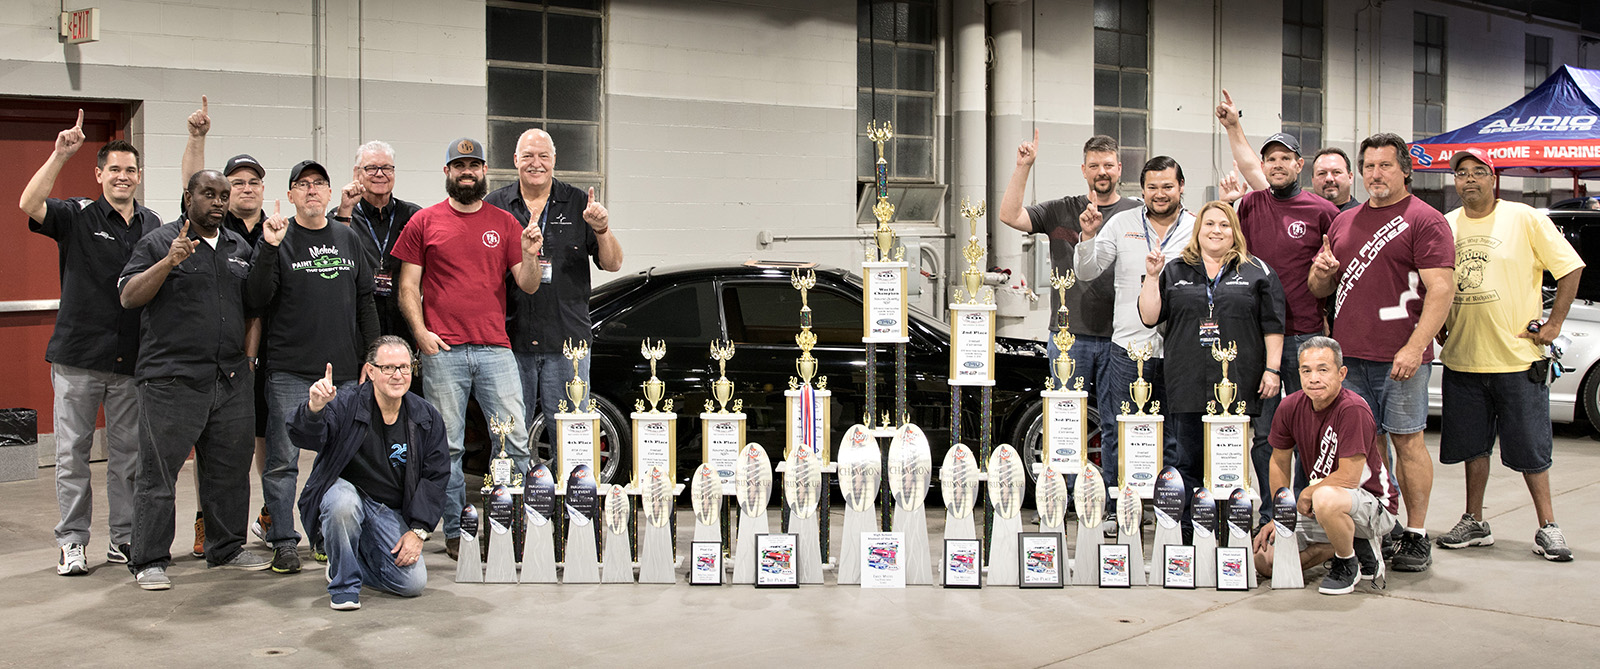 teamhybrids finals car audio championships 2019 pasmag